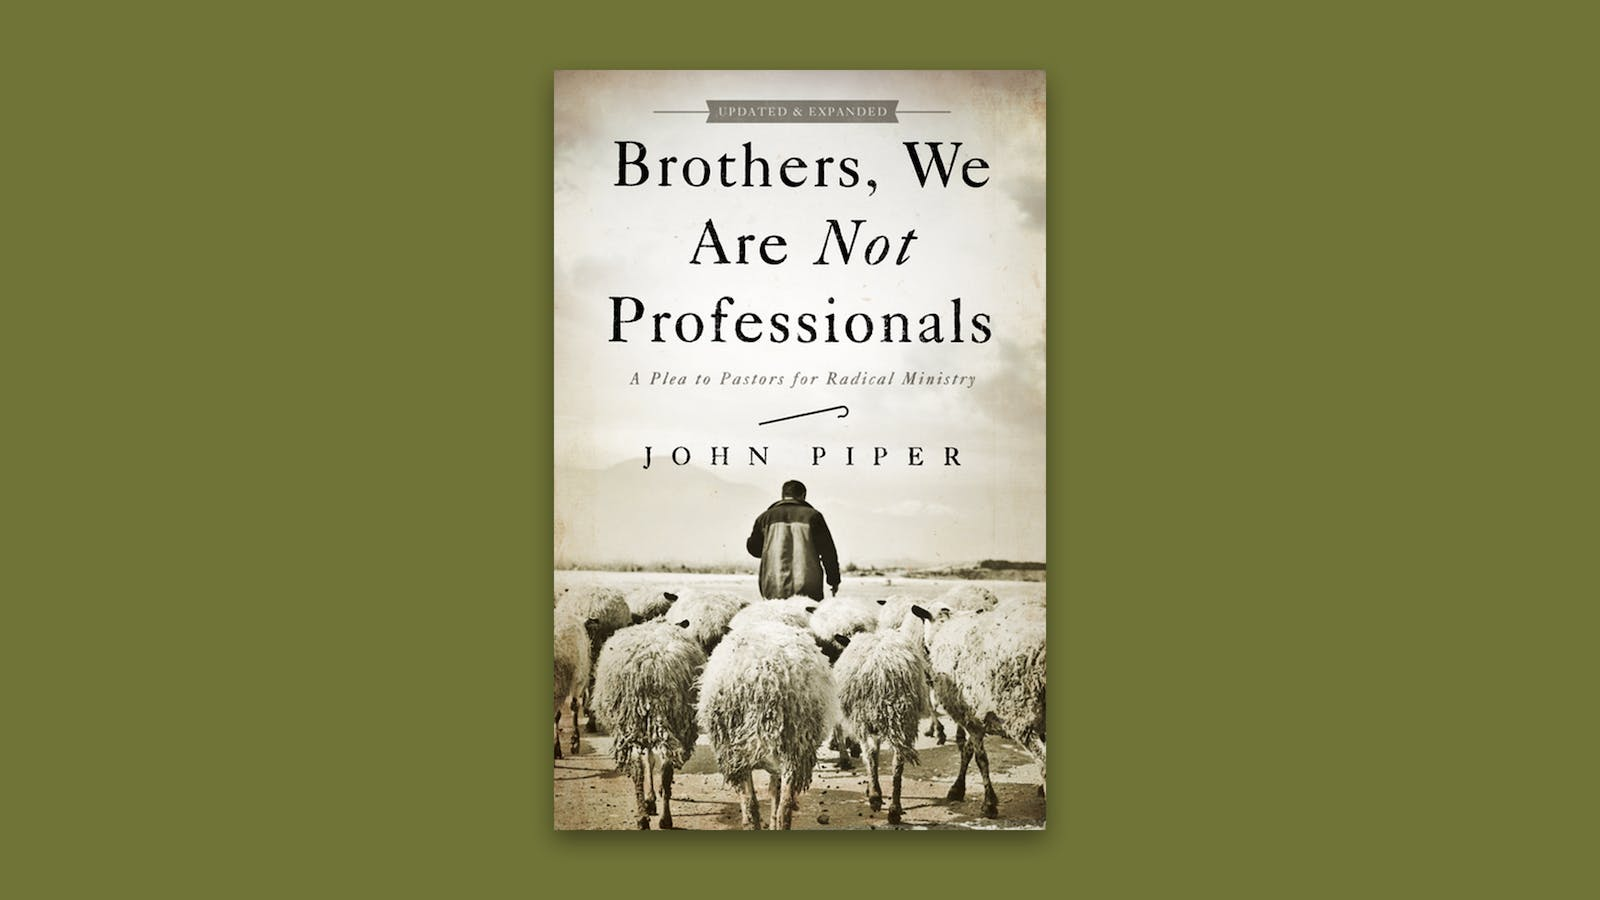 Brothers, We Are Not Professionals | Desiring God